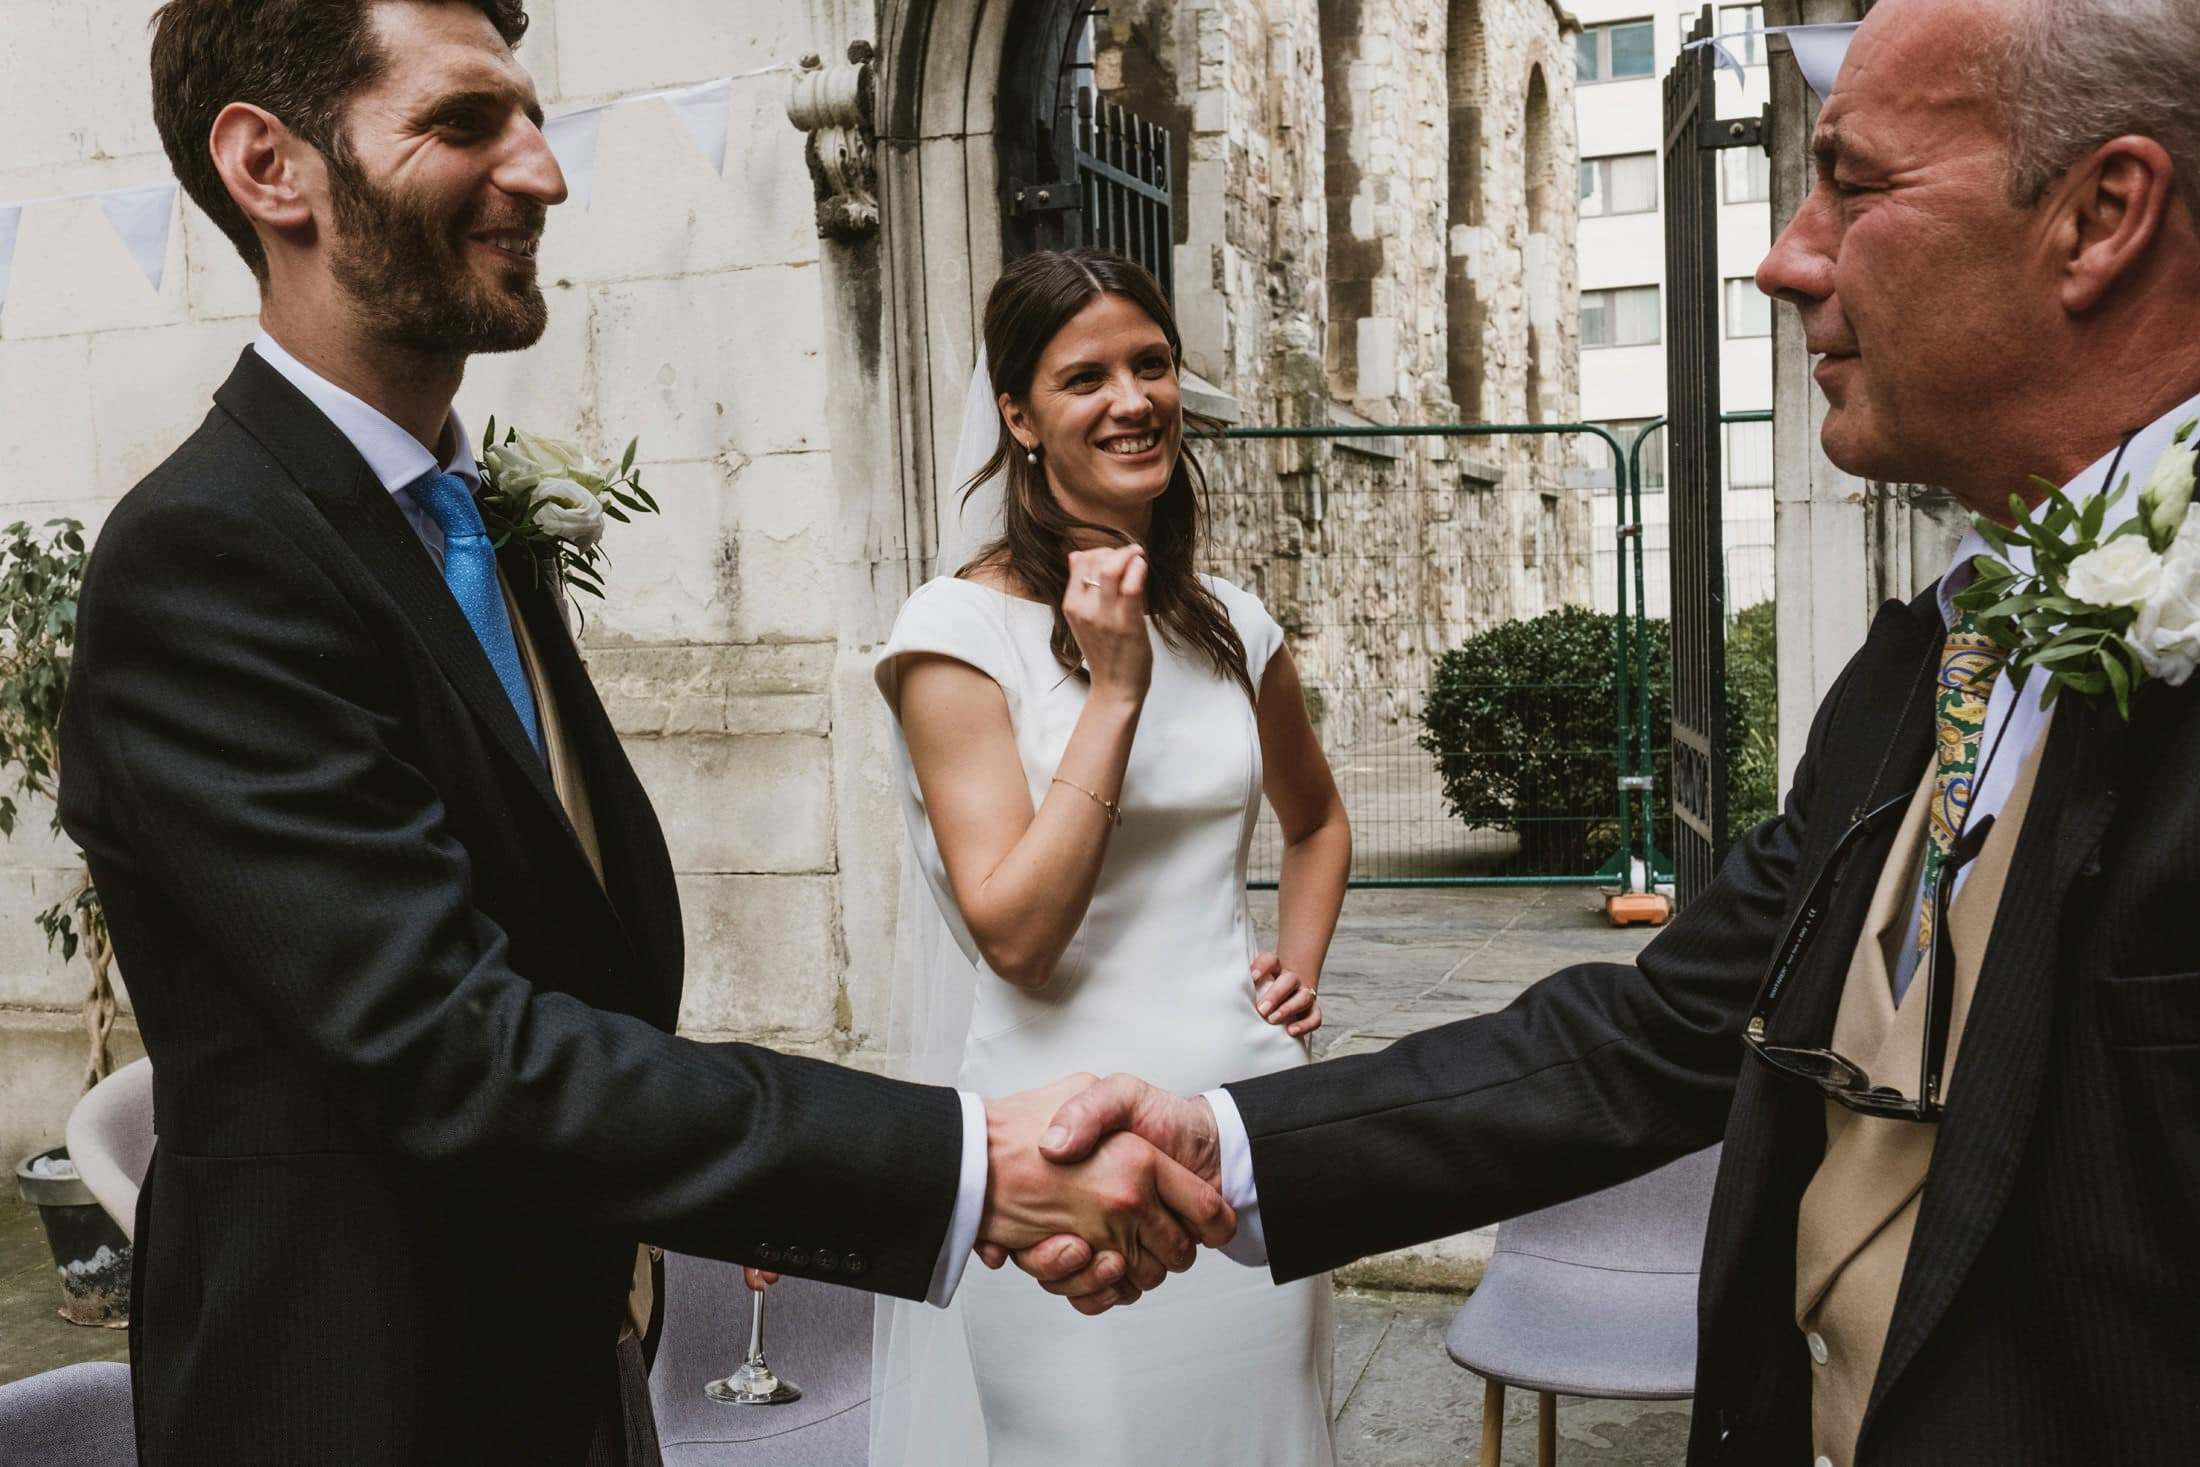 A groom and Father of the bride shake hands at an outdoor intimate wedding in London. Behind and between stands the bride watching on.